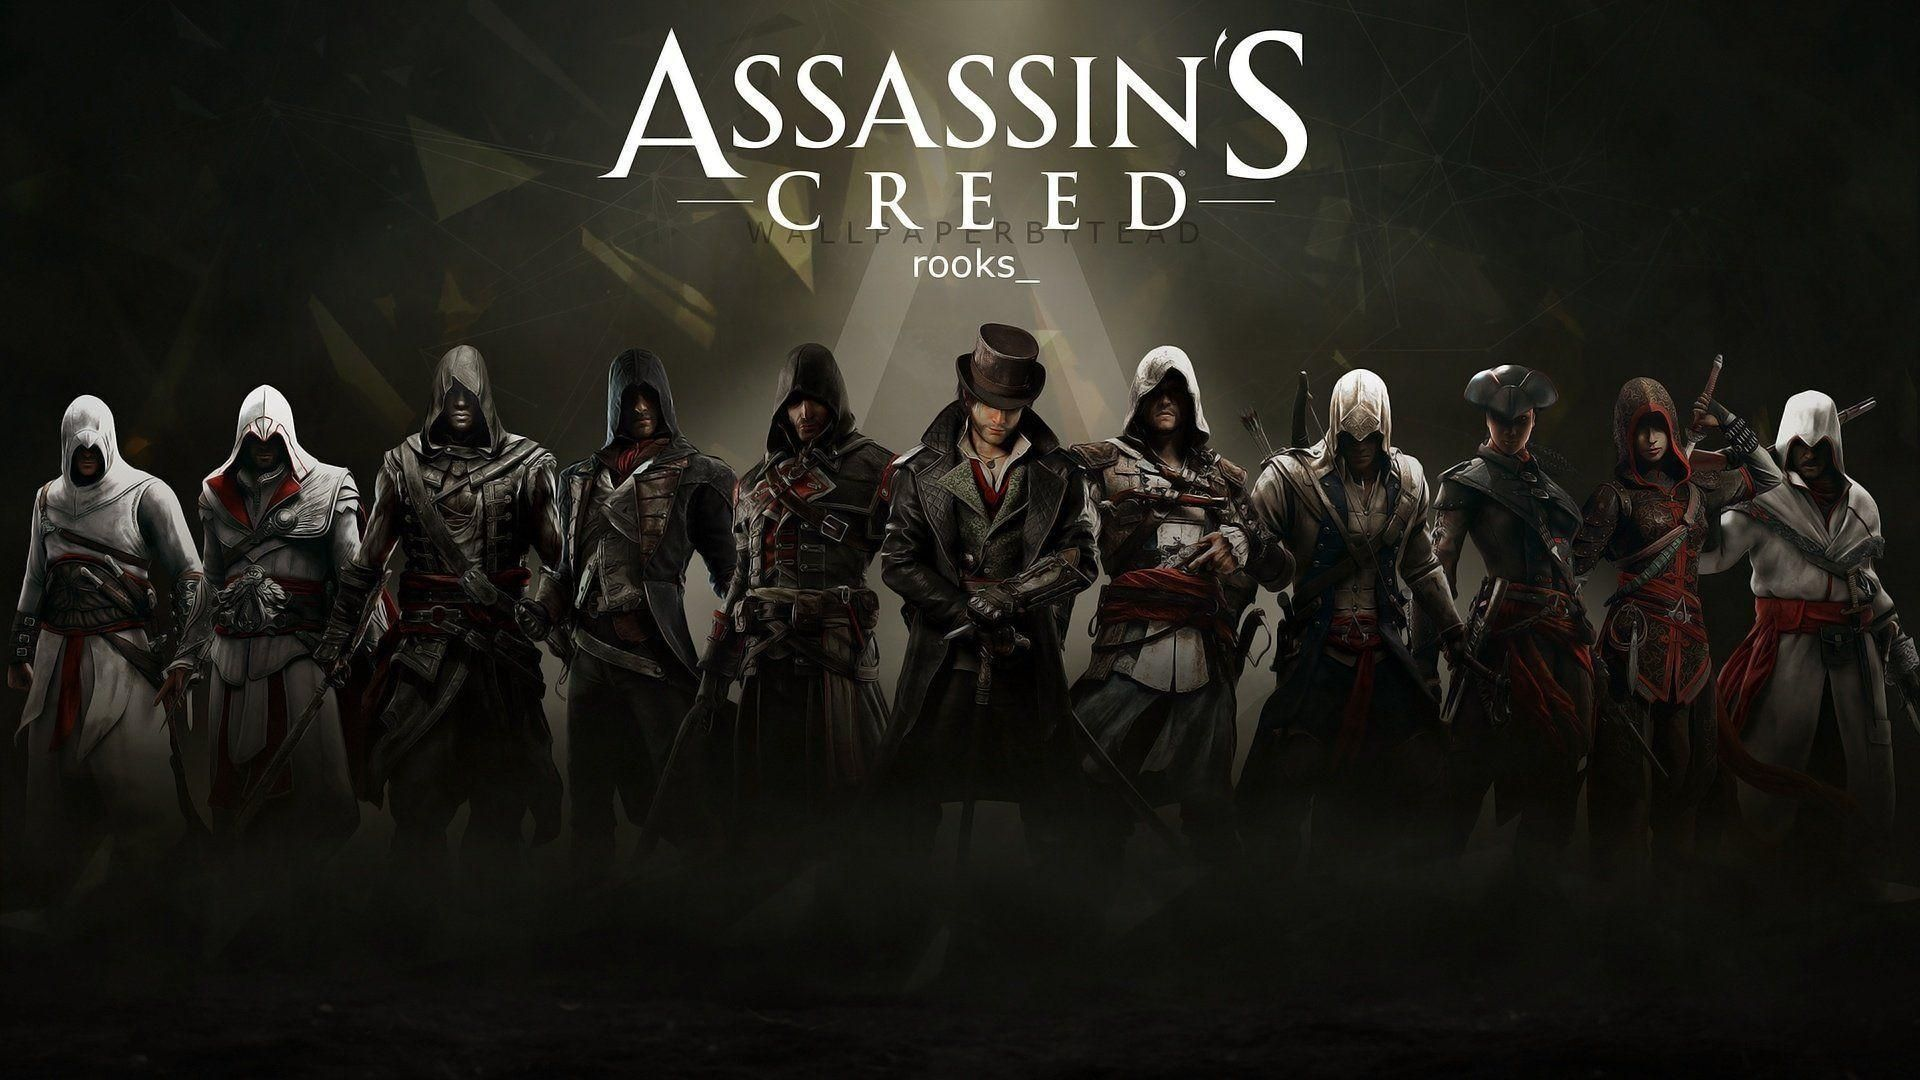 Edited By Tead Latest Version Featuring Aguilar From Assassins Creedmovie All Rights Belong To Ubisoft Assassins Creed Hd Wallpaper 4 By Tead